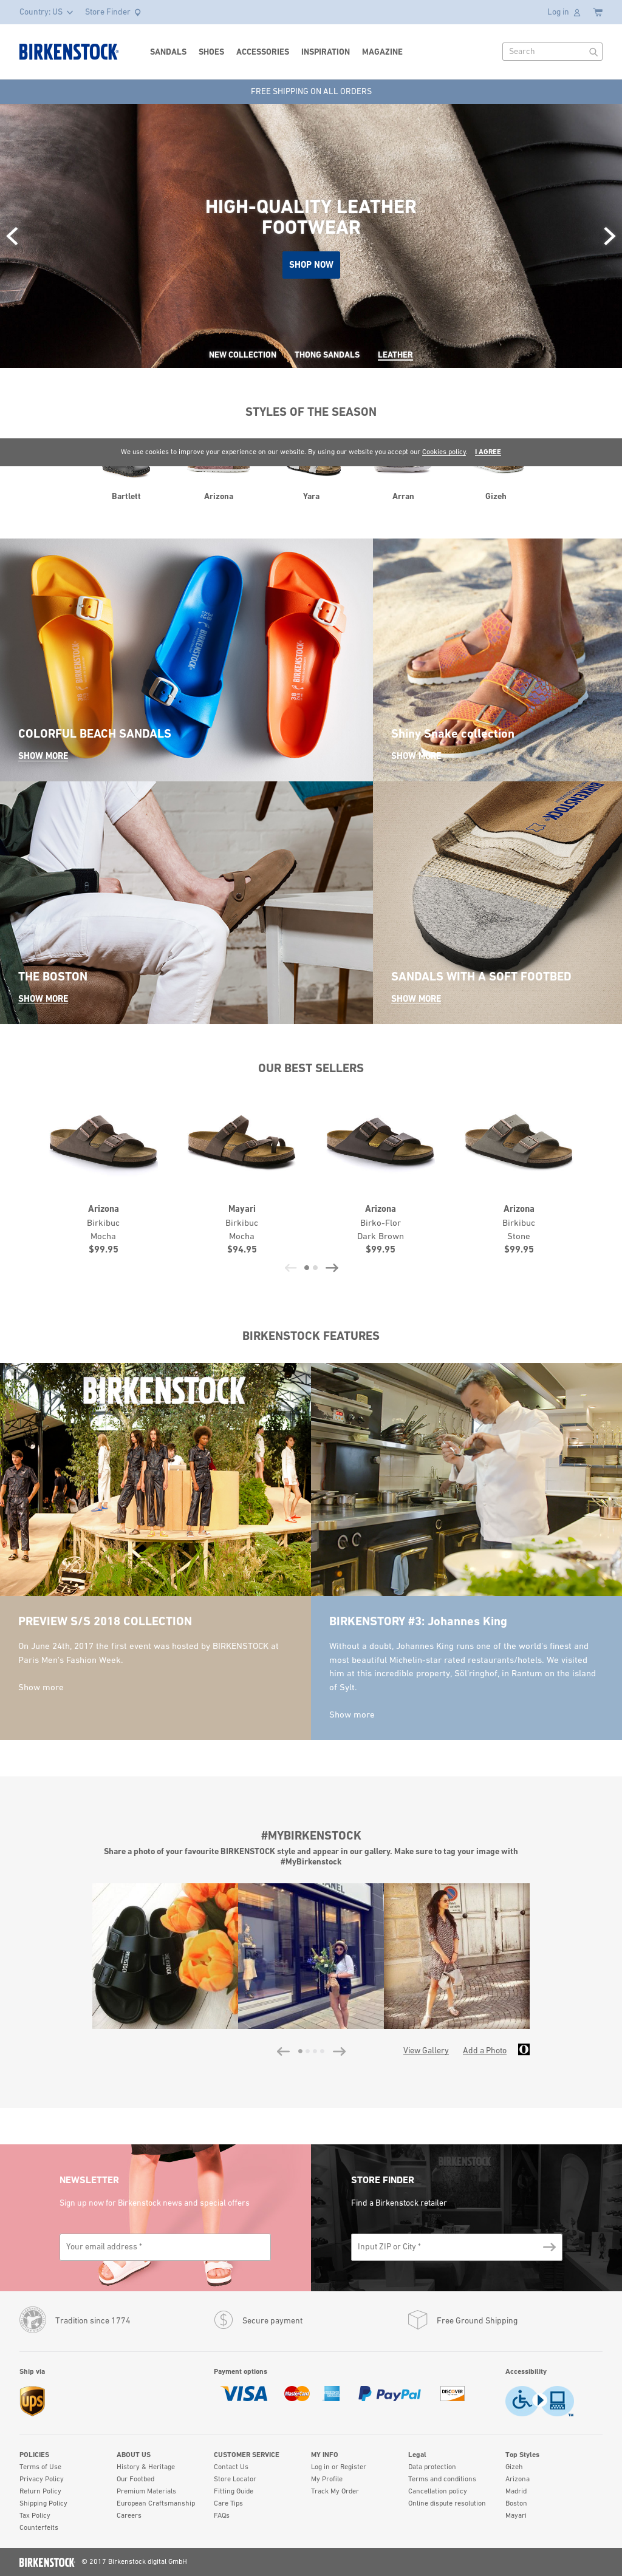 Birkenstock and KPM Team Up on Limited Edition Sandal